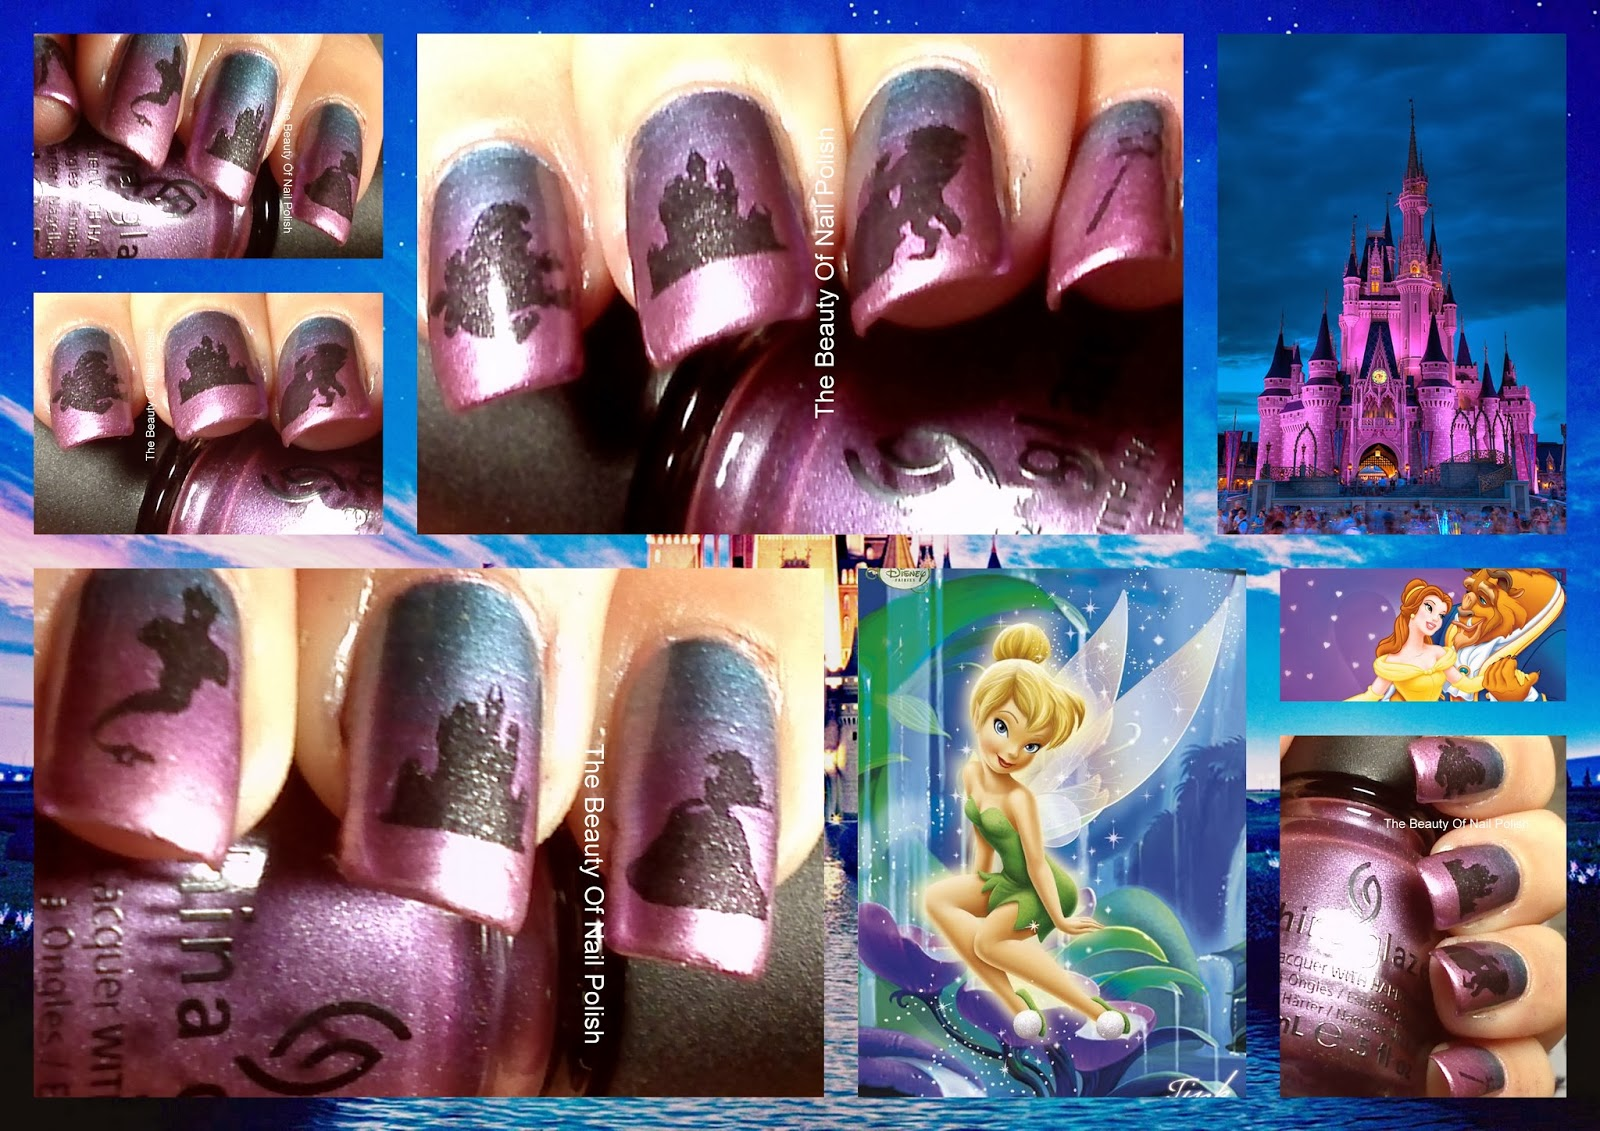 FAIRY TAIL - The Beauty of Nail Polish